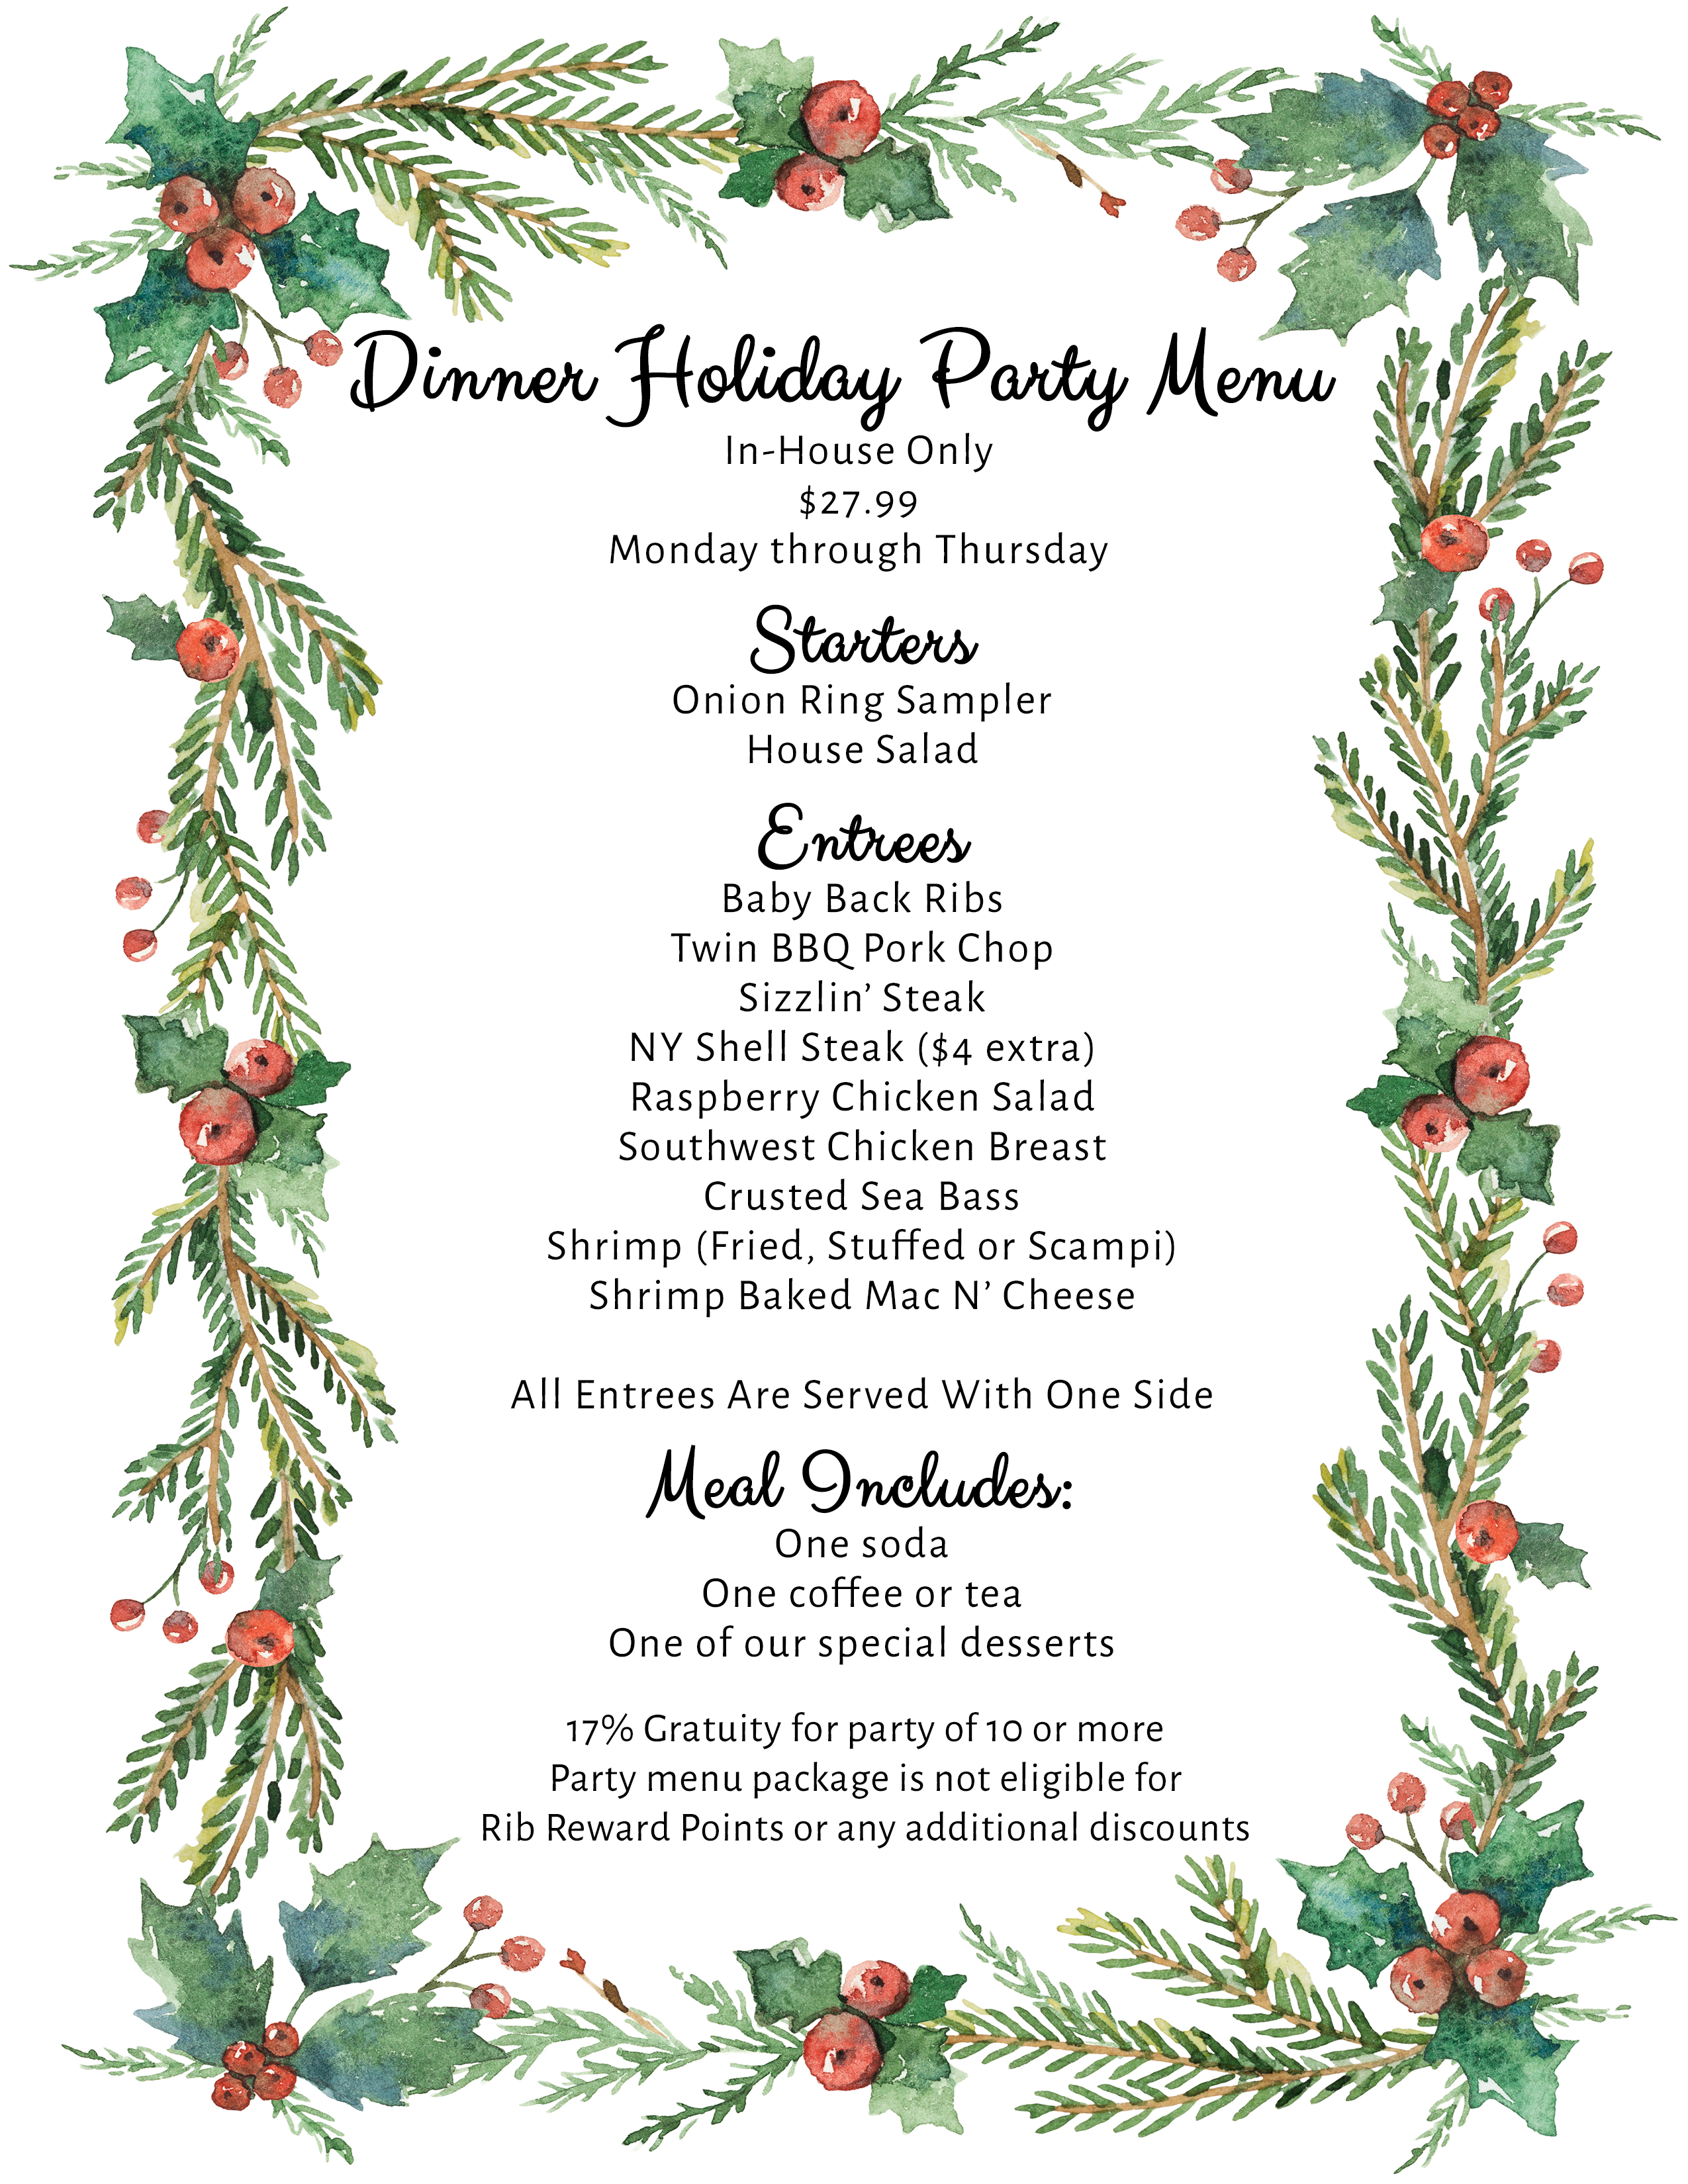 Dinner Holiday Party Menu In-House Only $27.99 Monday through Thursday Starters Onion Ring Sampler House Salad  Entrees Baby Back Ribs Twin BBQ Pork Chop Sizzlin' Steak NY Shell Steak ($4 extra) Raspberry Chicken Salad Southwest Chicken Breast Crusted Sea Bass Shrimp (Fried, Stuffed or Scampi) Shrimp Baked Mac N' Cheese  All Entrees Are Served With One Side  Meal Includes: One soda  One coffee or tea One of our special desserts  17% Gratuity for party of 10 or more Party menu package is not eligible for  Rib Reward Points or any additional discounts